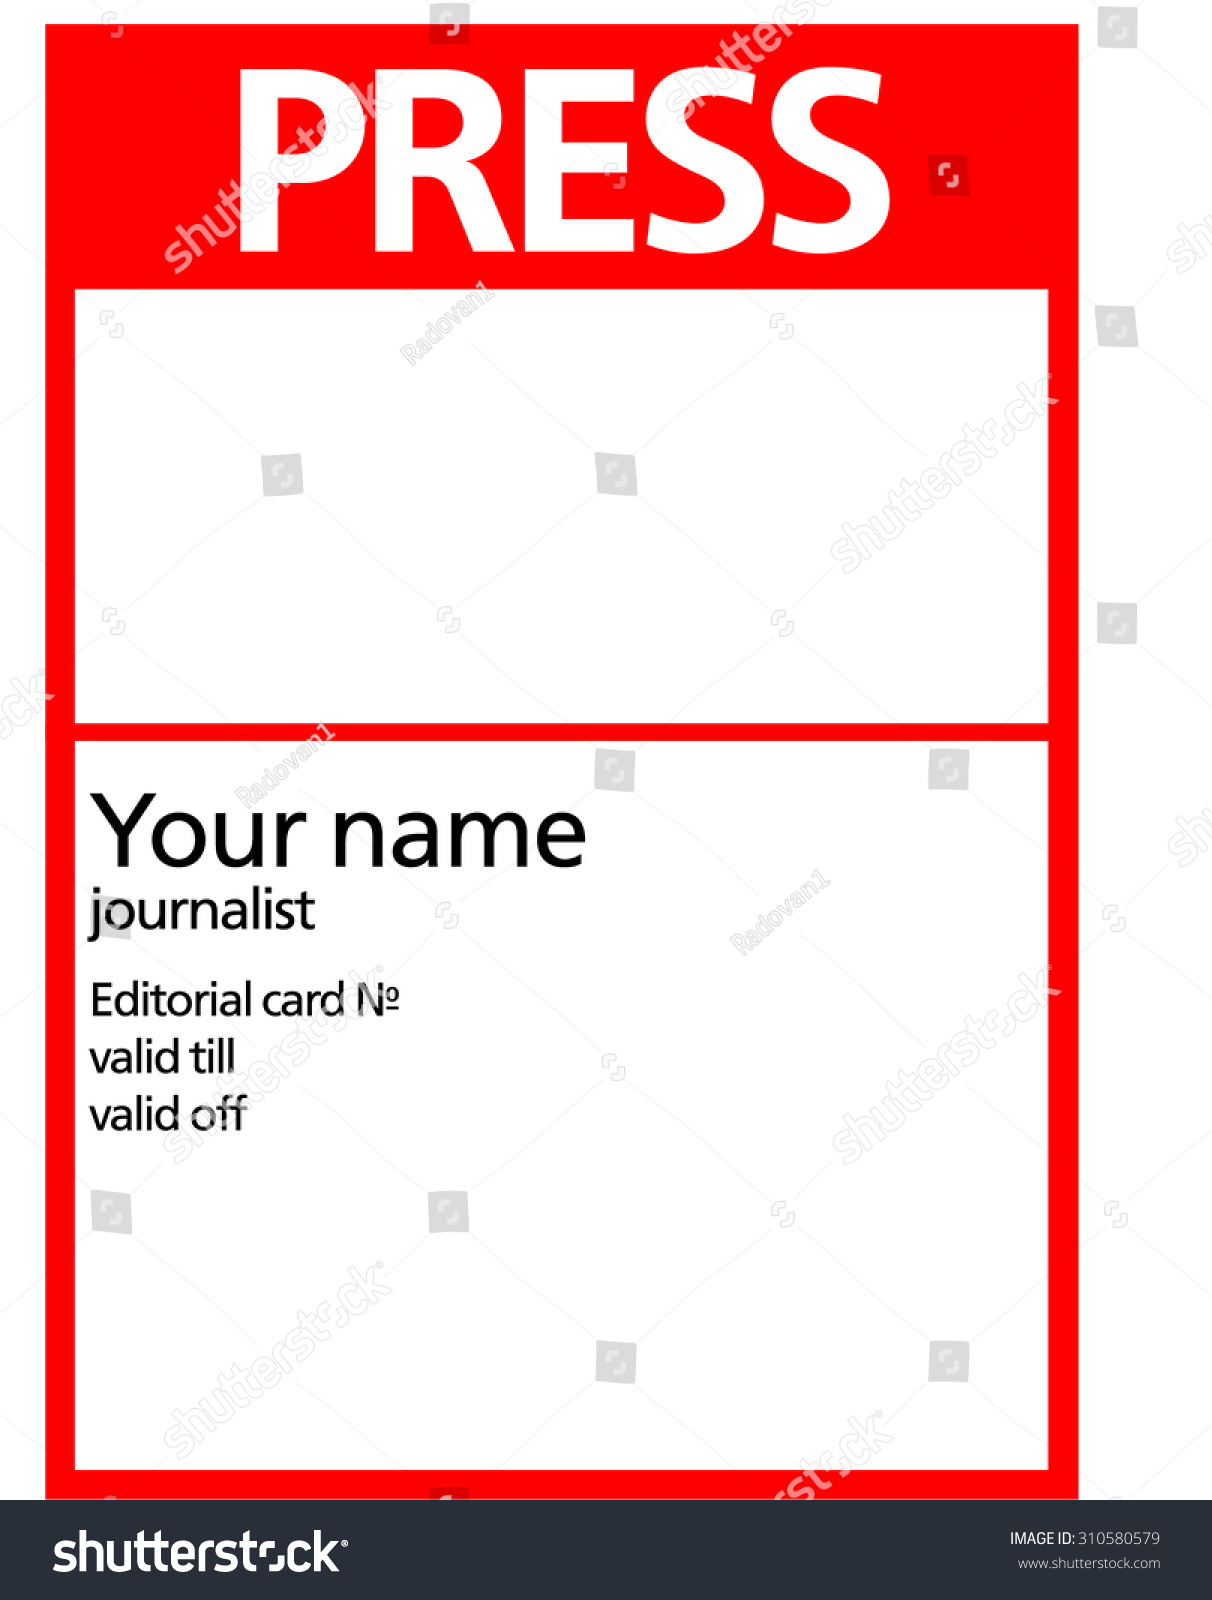 media press pass template - red white press pass id card stock illustration 310580579